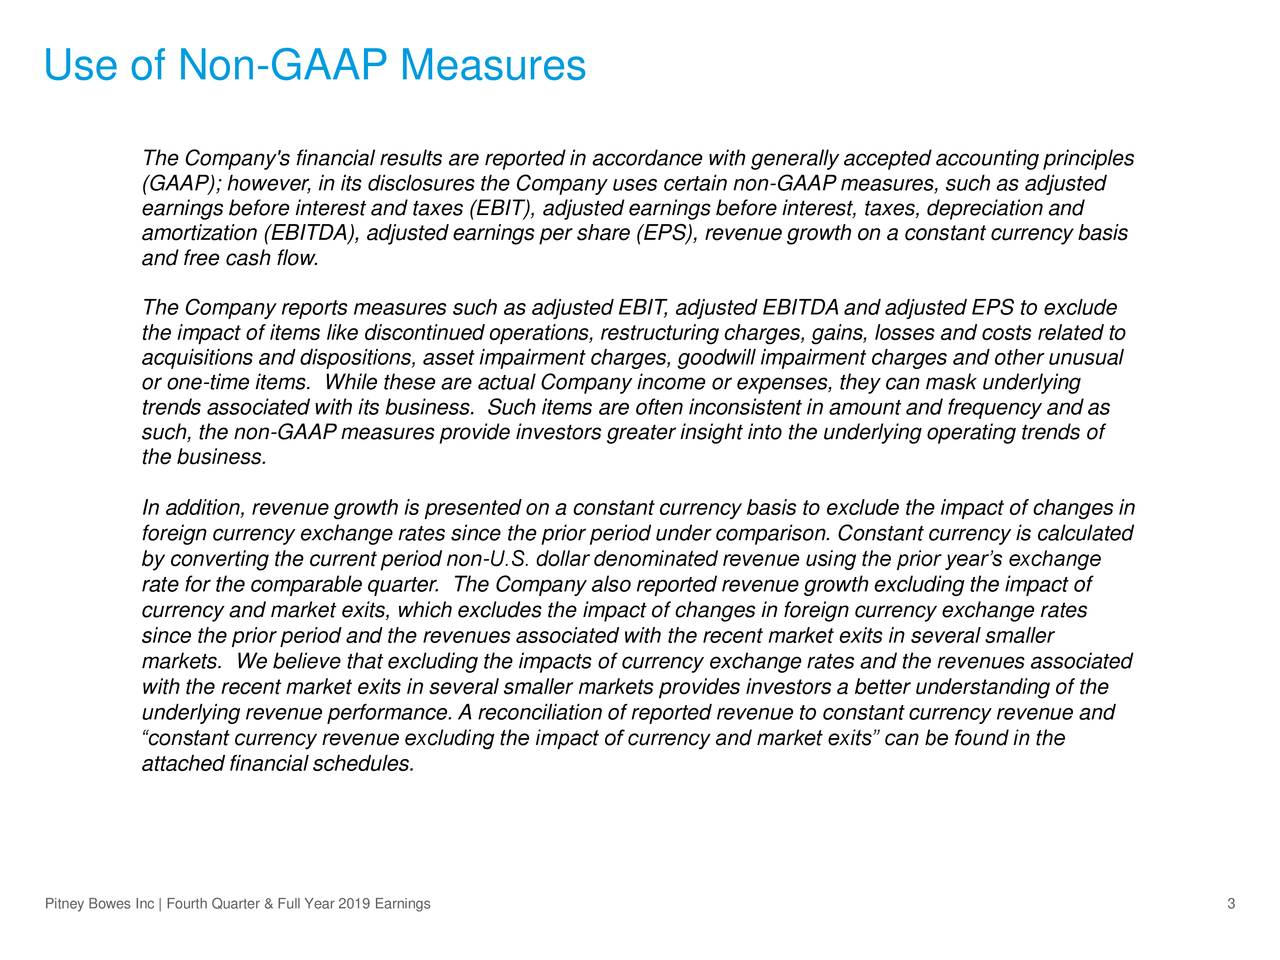 Use of Non-GAAP Measures